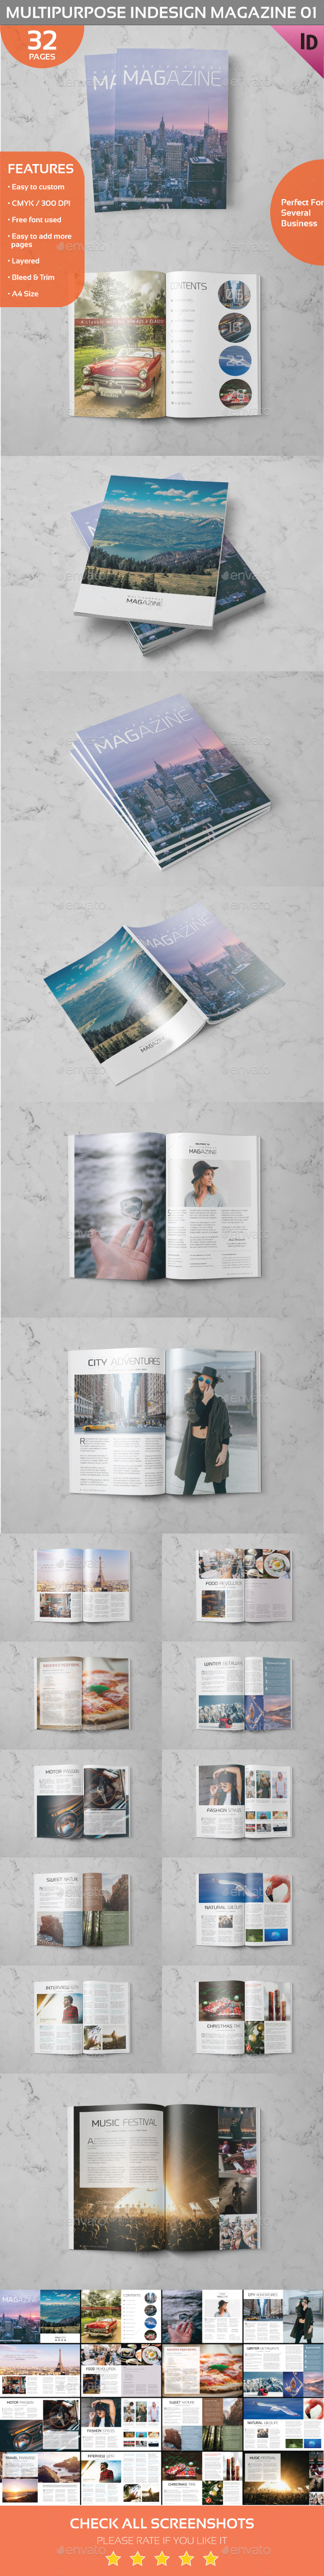 Multipurpose Indesign Magazine 01 - Magazines Print Templates